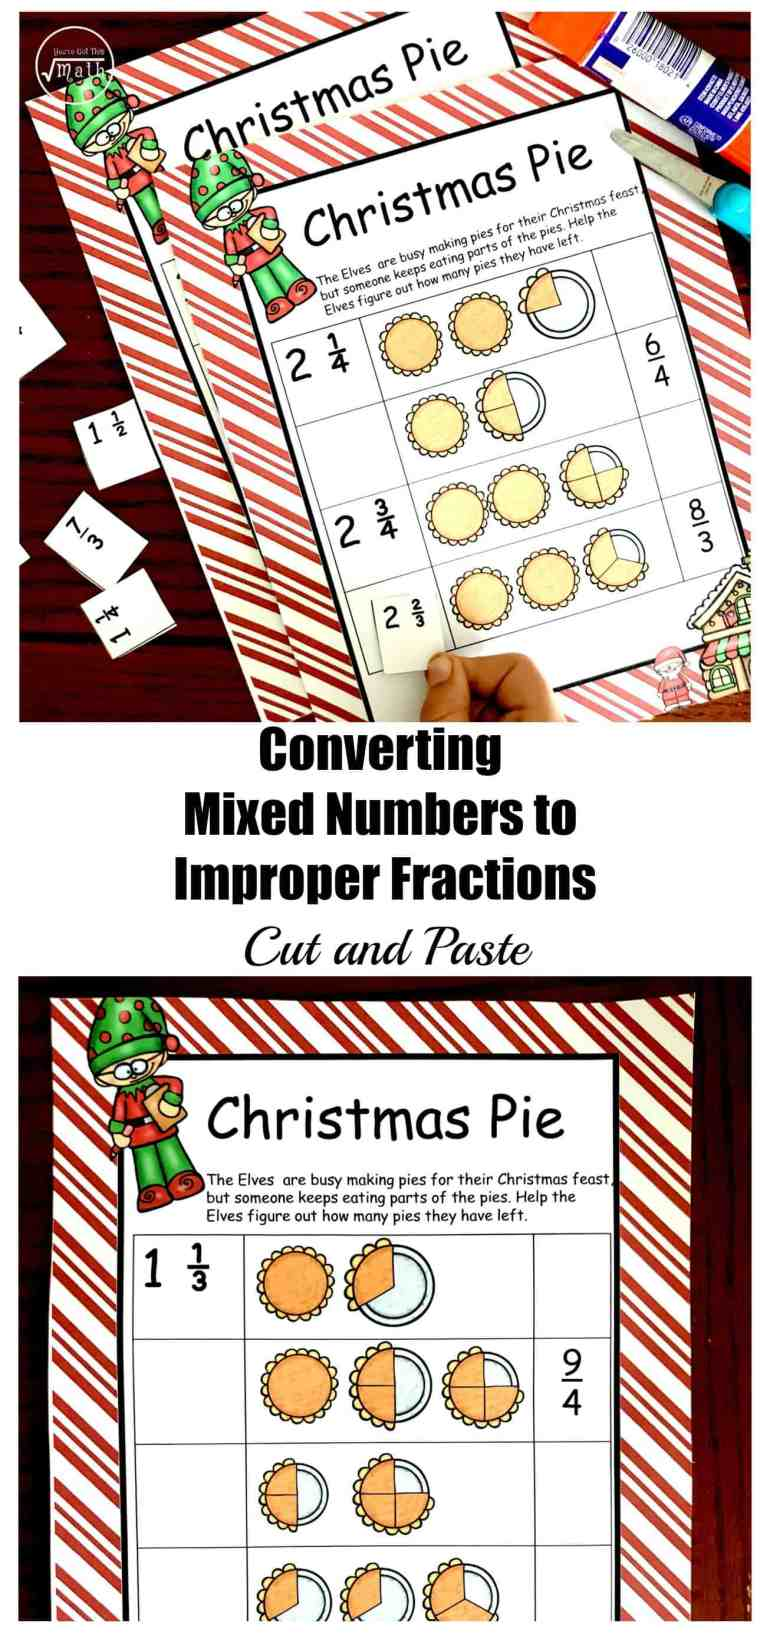 This free Cut and Paste Converting Mixed Numbers To Improper Fractions Worksheet helps children visualize this skill while having fun.